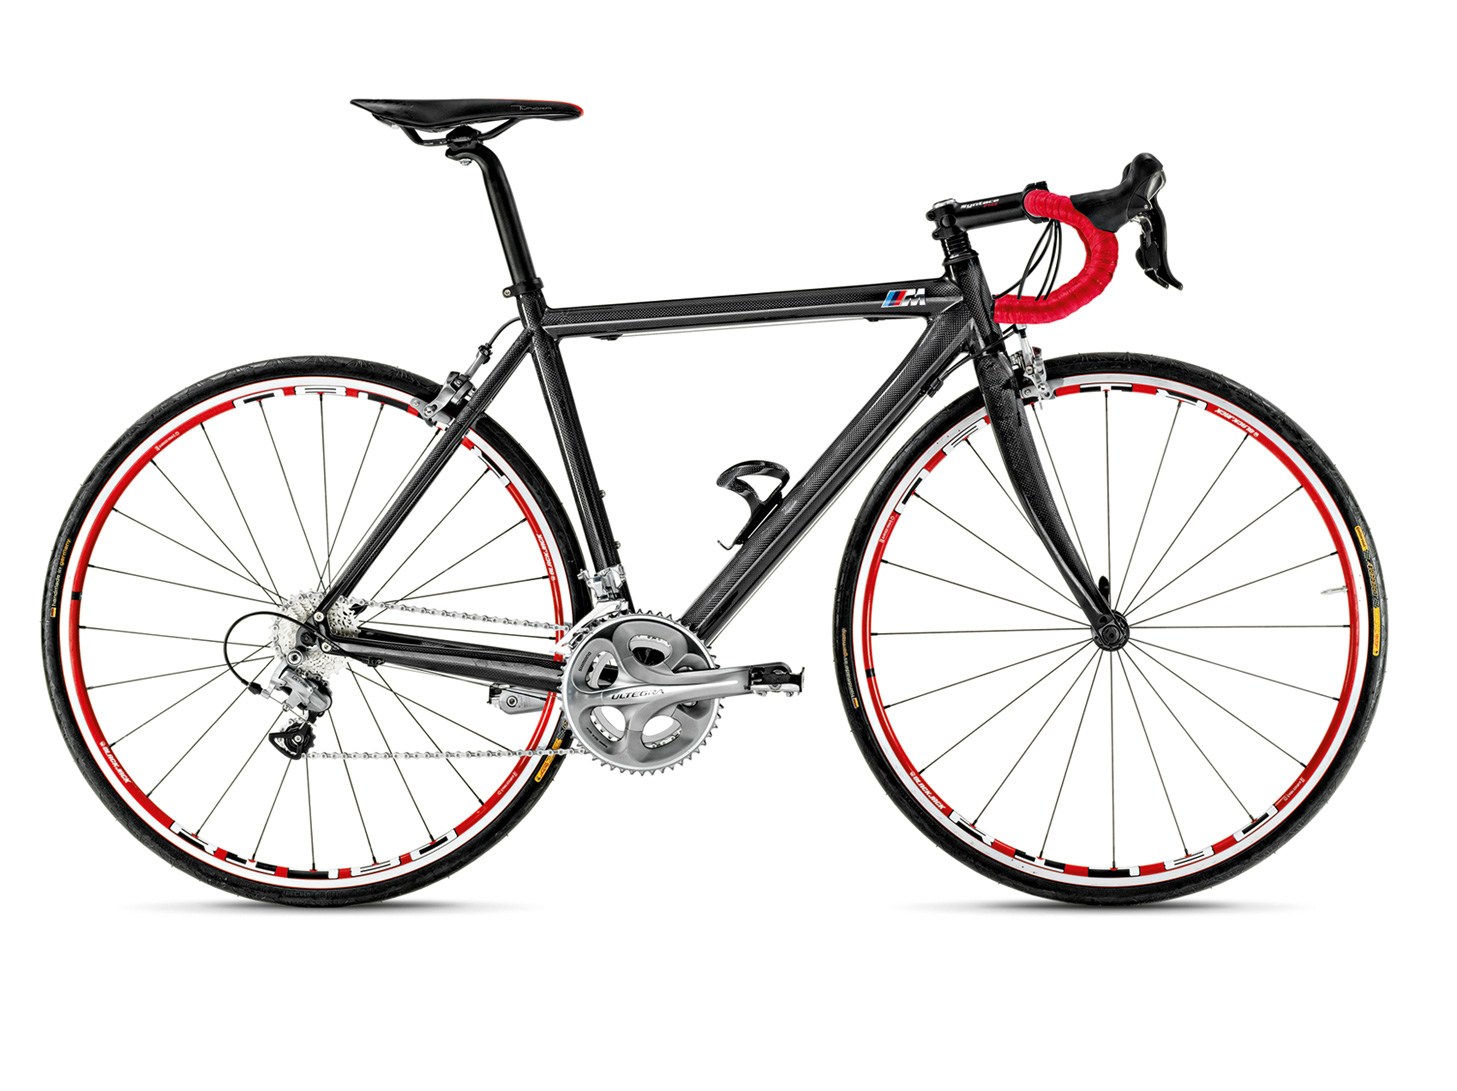 M Carbon Racer Bike From Bmw An Innovative Luxury Racing